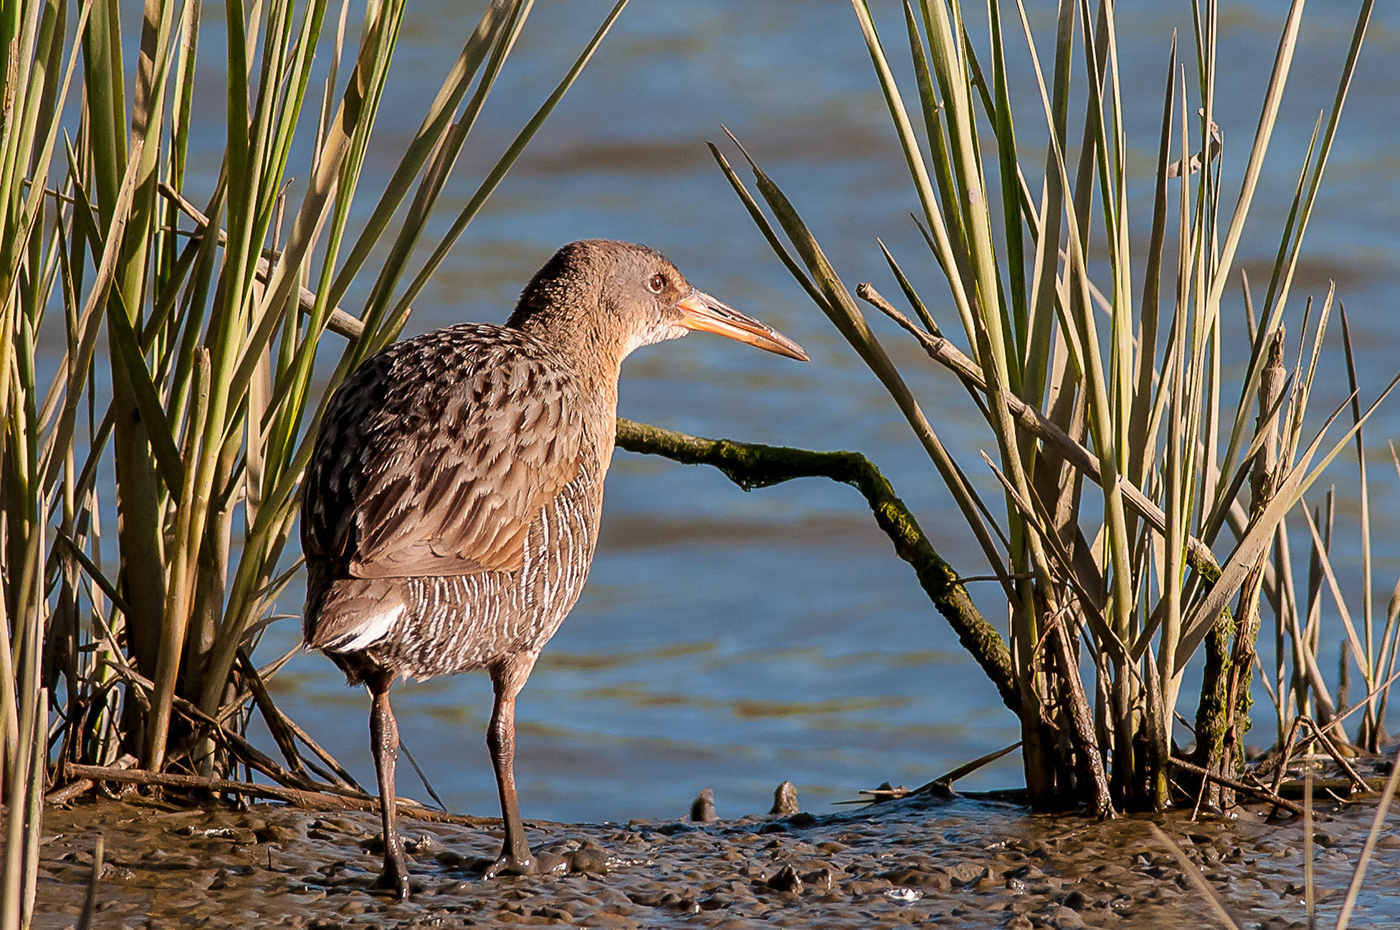 Invasive Weed Removal Harms Native Bird In California The Why Files